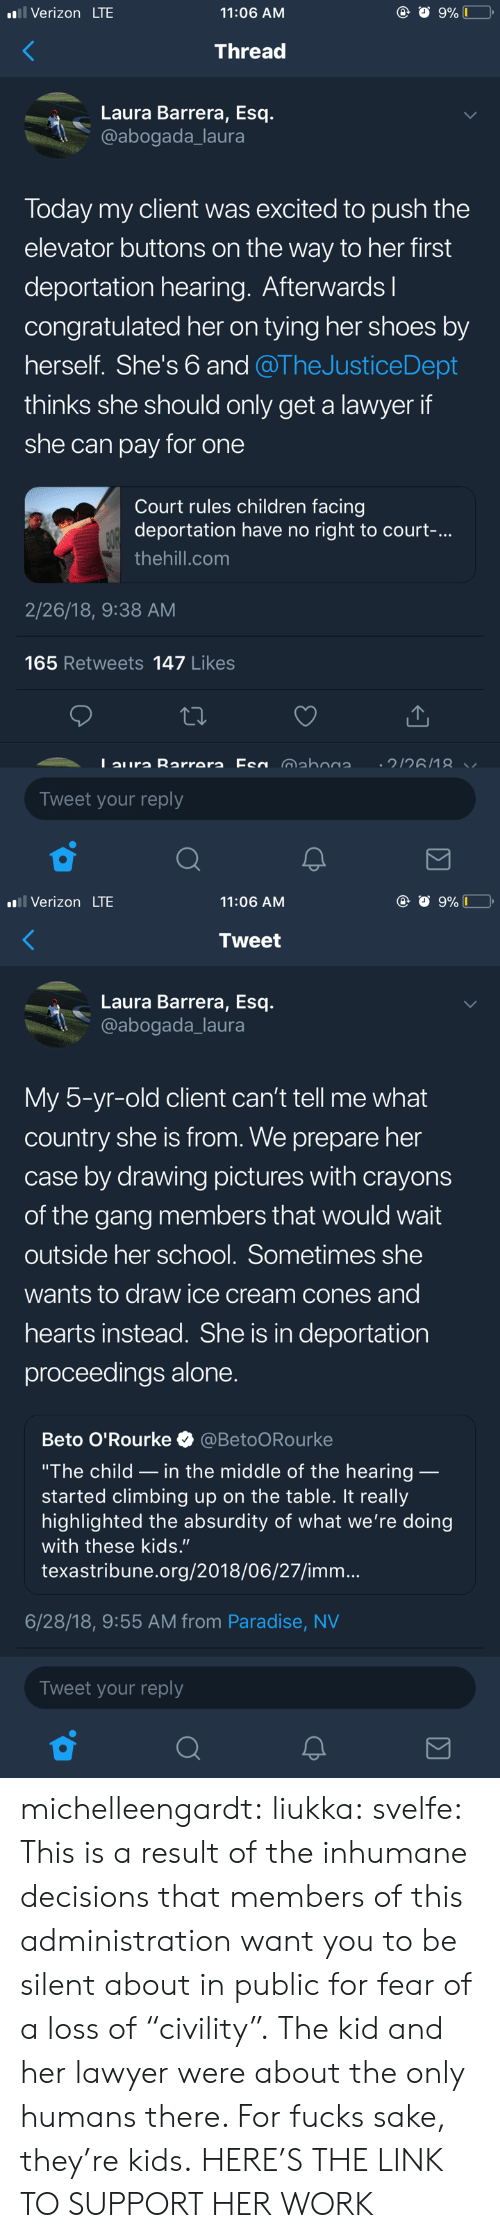 "Cant Tell: Verizon LTE  11:06 AM  Thread  Laura Barrera, Esq.  @abogada_laura  Today my client was excited to push the  elevator buttons on the way to her first  deportation hearing. Afterwardsl  congratulated her on tying her shoes by  herself. She's 6 and @TheJusticeDept  thinks she should only get a lawyer if  she can pay for one  Court rules children facing  deportation have no right to court-.  thehill.com  2/26/18, 9:38 AM  165 Retweets 147 Likes  Tweet your reply   Verizon LTE  11:06 AM  Tweet  Laura Barrera, Esq.  @abogada_laura  My 5-yr-old client can't tell me what  country she is from. We prepare her  case by drawing pictures with crayons  of the gang members that would wait  outside her school. Sometimes she  wants to draw ice cream cones and  hearts instead. She is in deportation  proceedings alone  Beto O'Rourke @BetoORourke  ""The child _ in the middle of the hearing  started climbing up on the table. It really  highlighted the absurdity of what we're doing  with these kids.""  texastribune.org/2018/06/27/imm...  6/28/18, 9:55 AM from Paradise, NV  Tweet your reply michelleengardt: liukka:  svelfe: This is a result of the inhumane decisions that members of this administration want you to be silent about in public for fear of a loss of ""civility"".  The kid and her lawyer were about the only humans there.  For fucks sake, they're kids.  HERE'S THE LINK TO SUPPORT HER WORK"